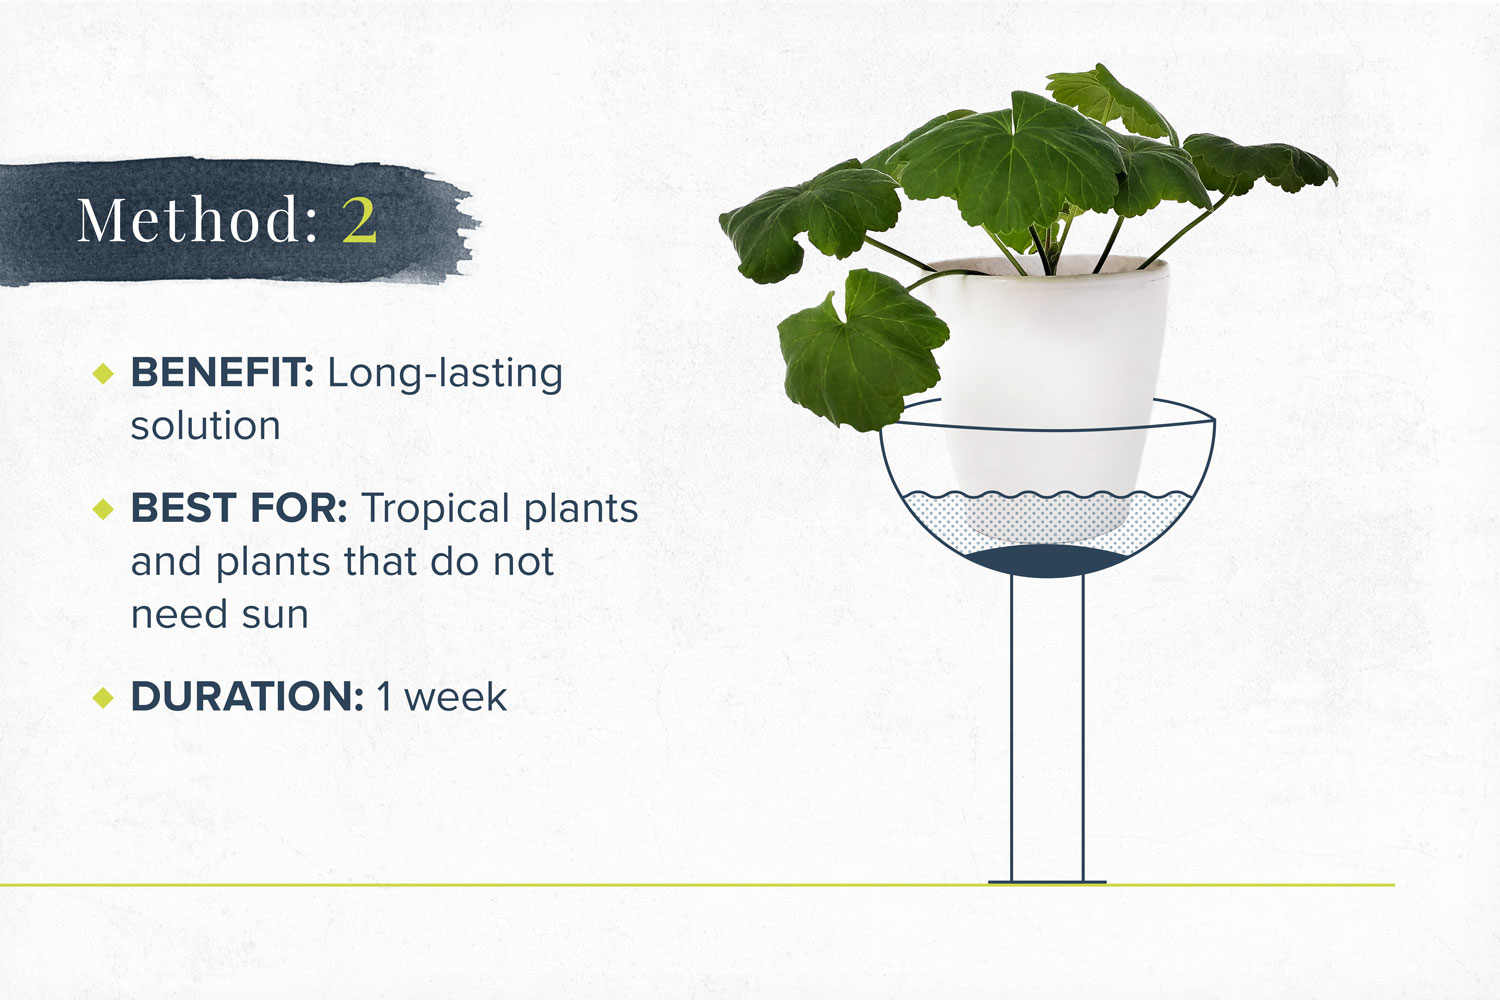 How to Water Plants While Away 20 DIY Methods   ProFlowers Blog